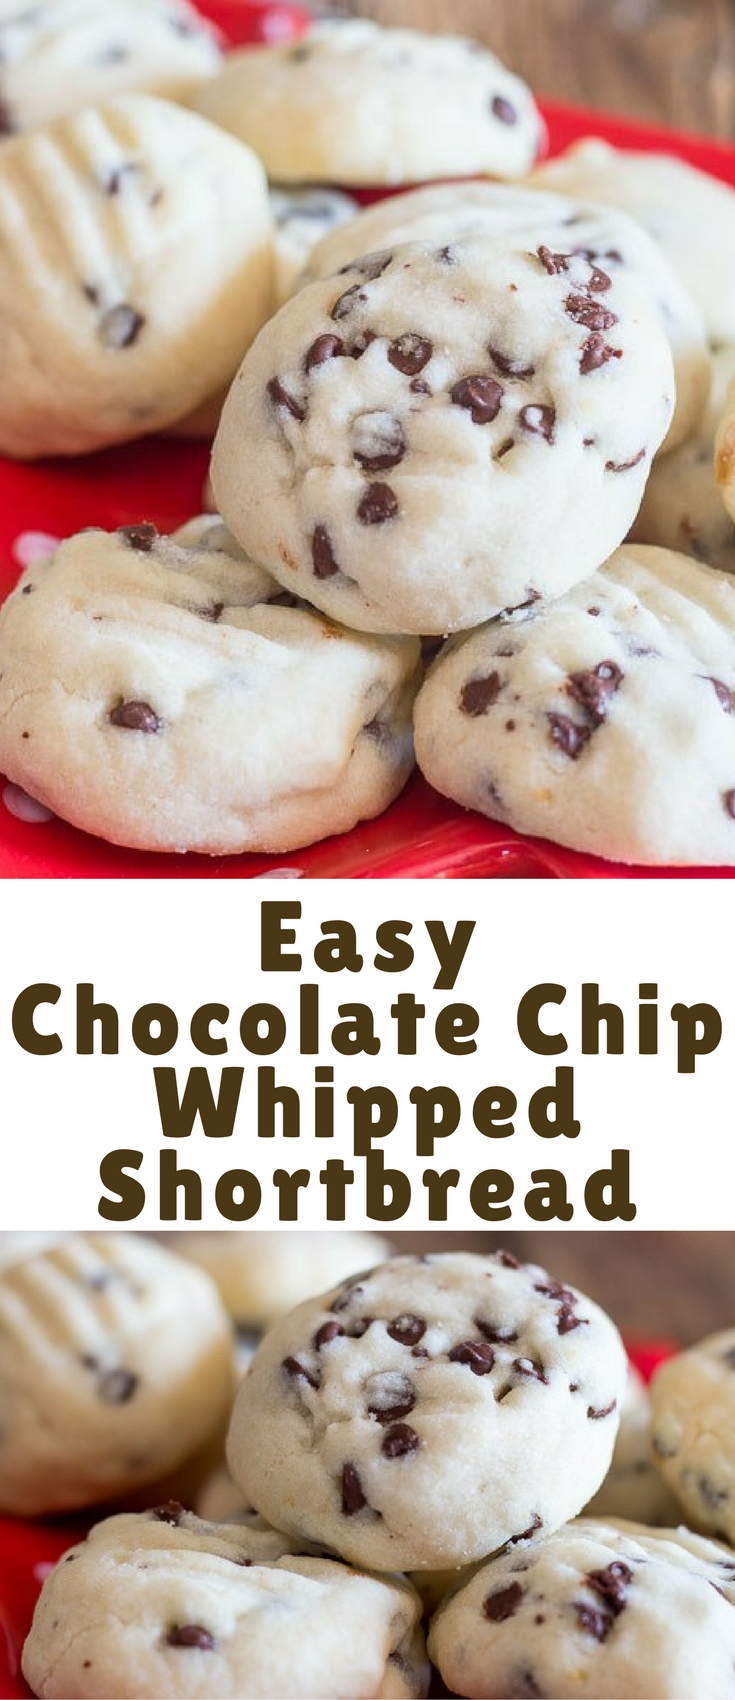 THESE EASY CHOCOLATE CHIP WHIPPED SHORTBREAD COOKIES ARE THE ABSOLUTE MELT IN YOUR MOUTH SHORTBREAD COOKIE. FAST, EASY AND THEY WILL BE GONE IN SECONDS.